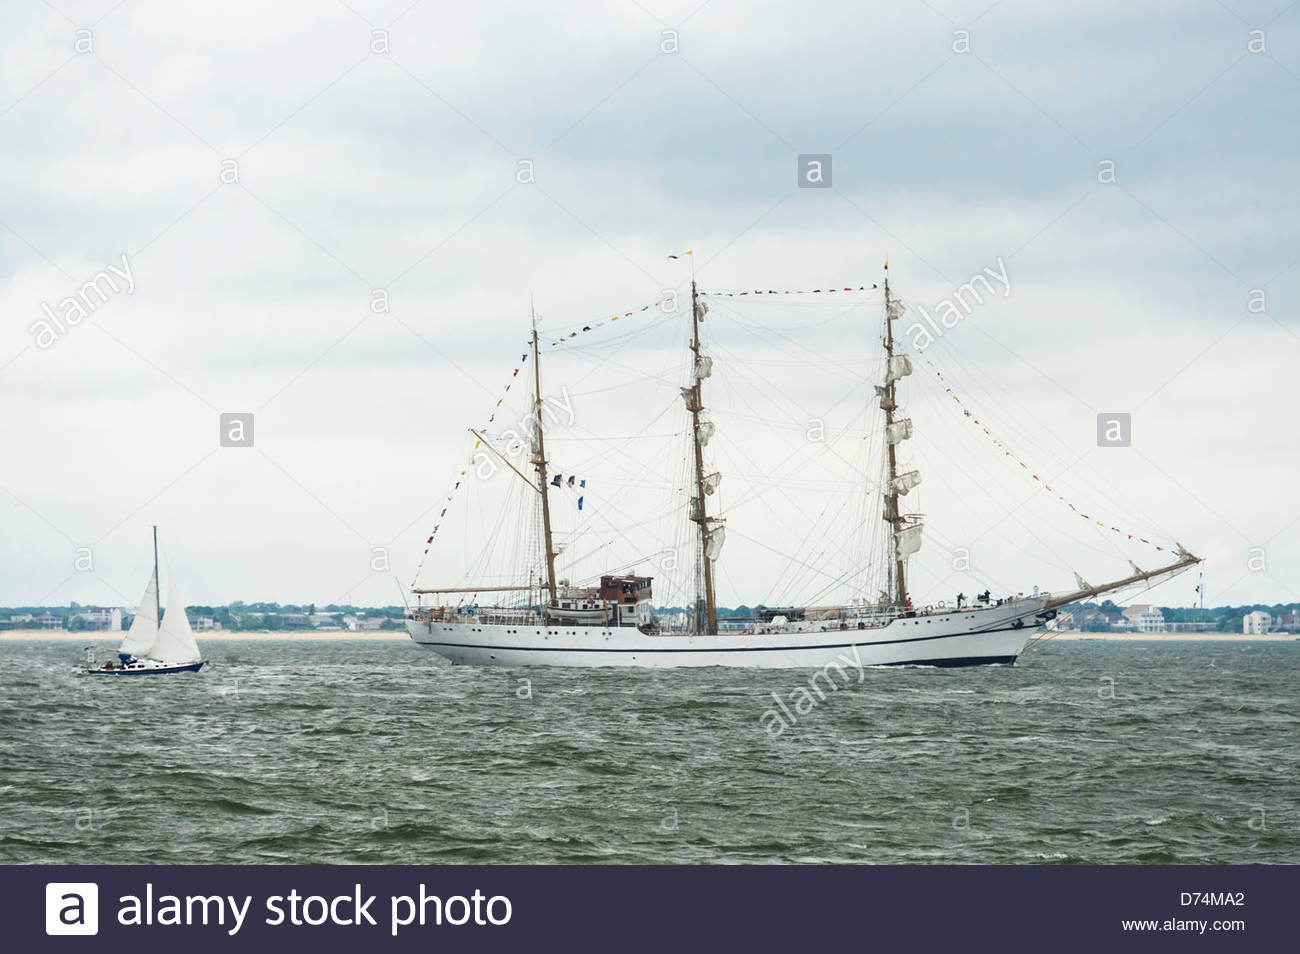 257 ft, Ecuadorian barque, GUAYAS, leaving Hampton Roads Harbor at conclusion of OpSail 2012 in Norfolk on June - Stock Image